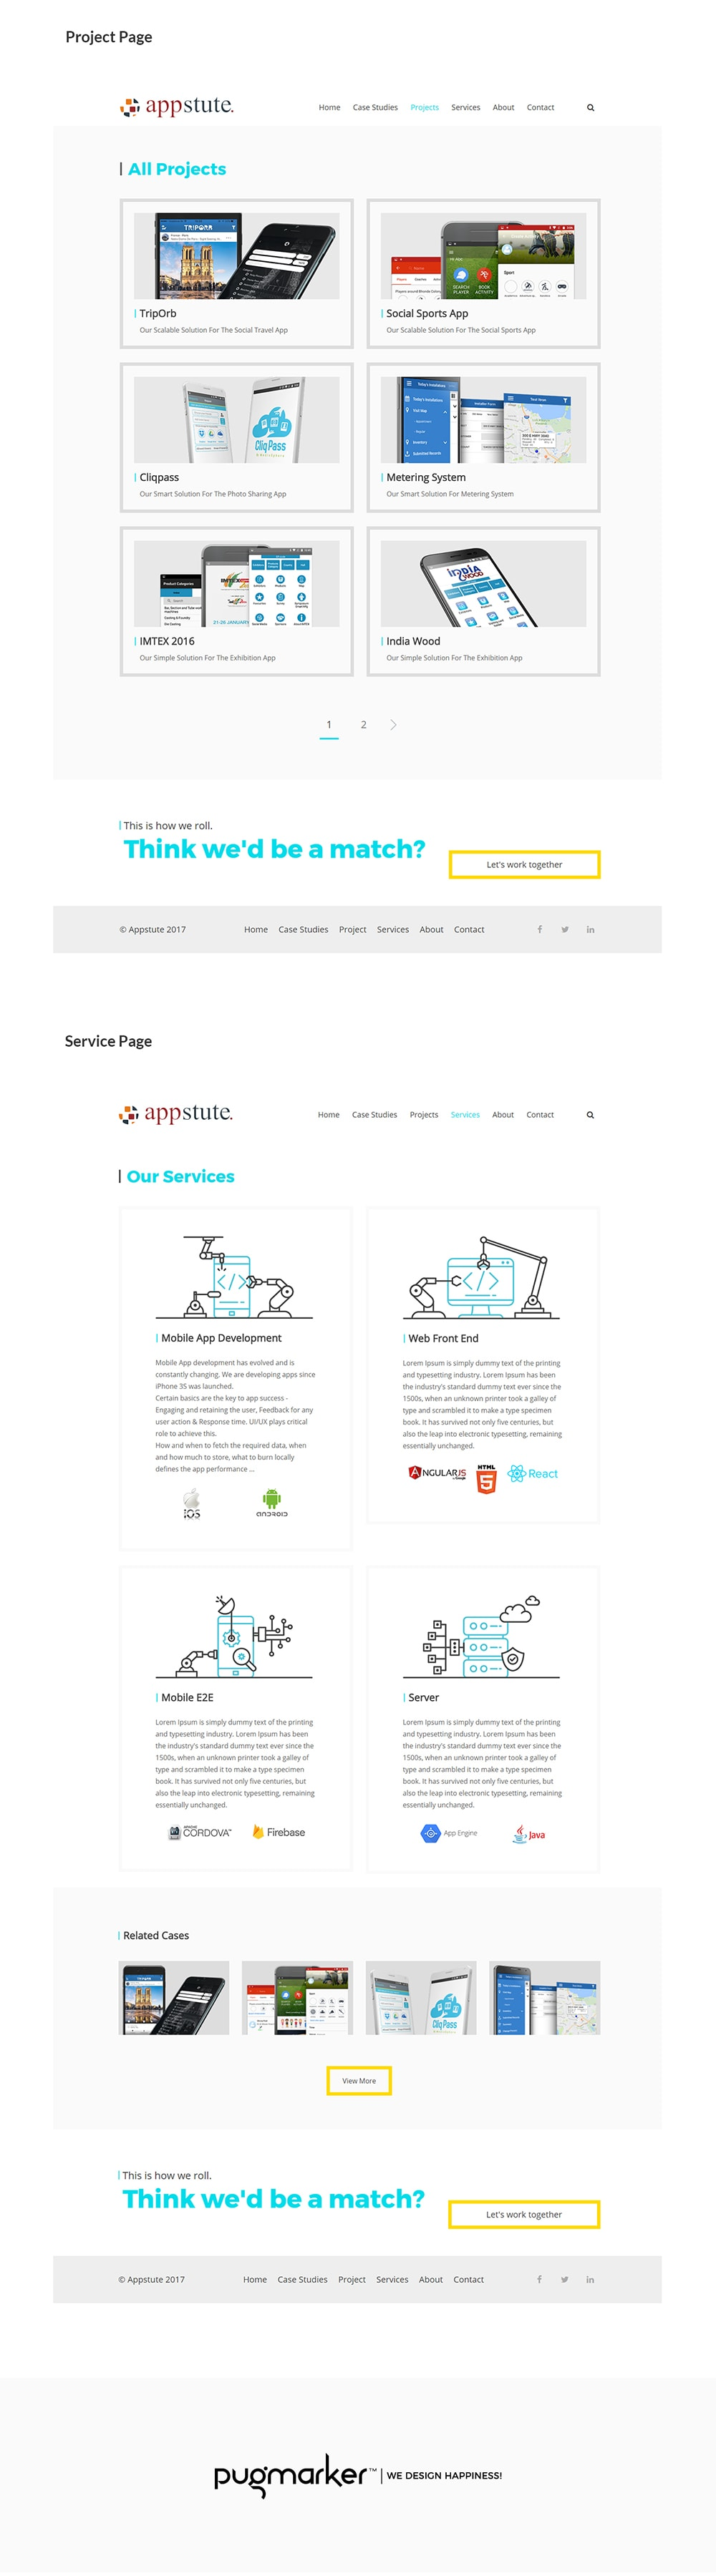 Appstute website product and service page design